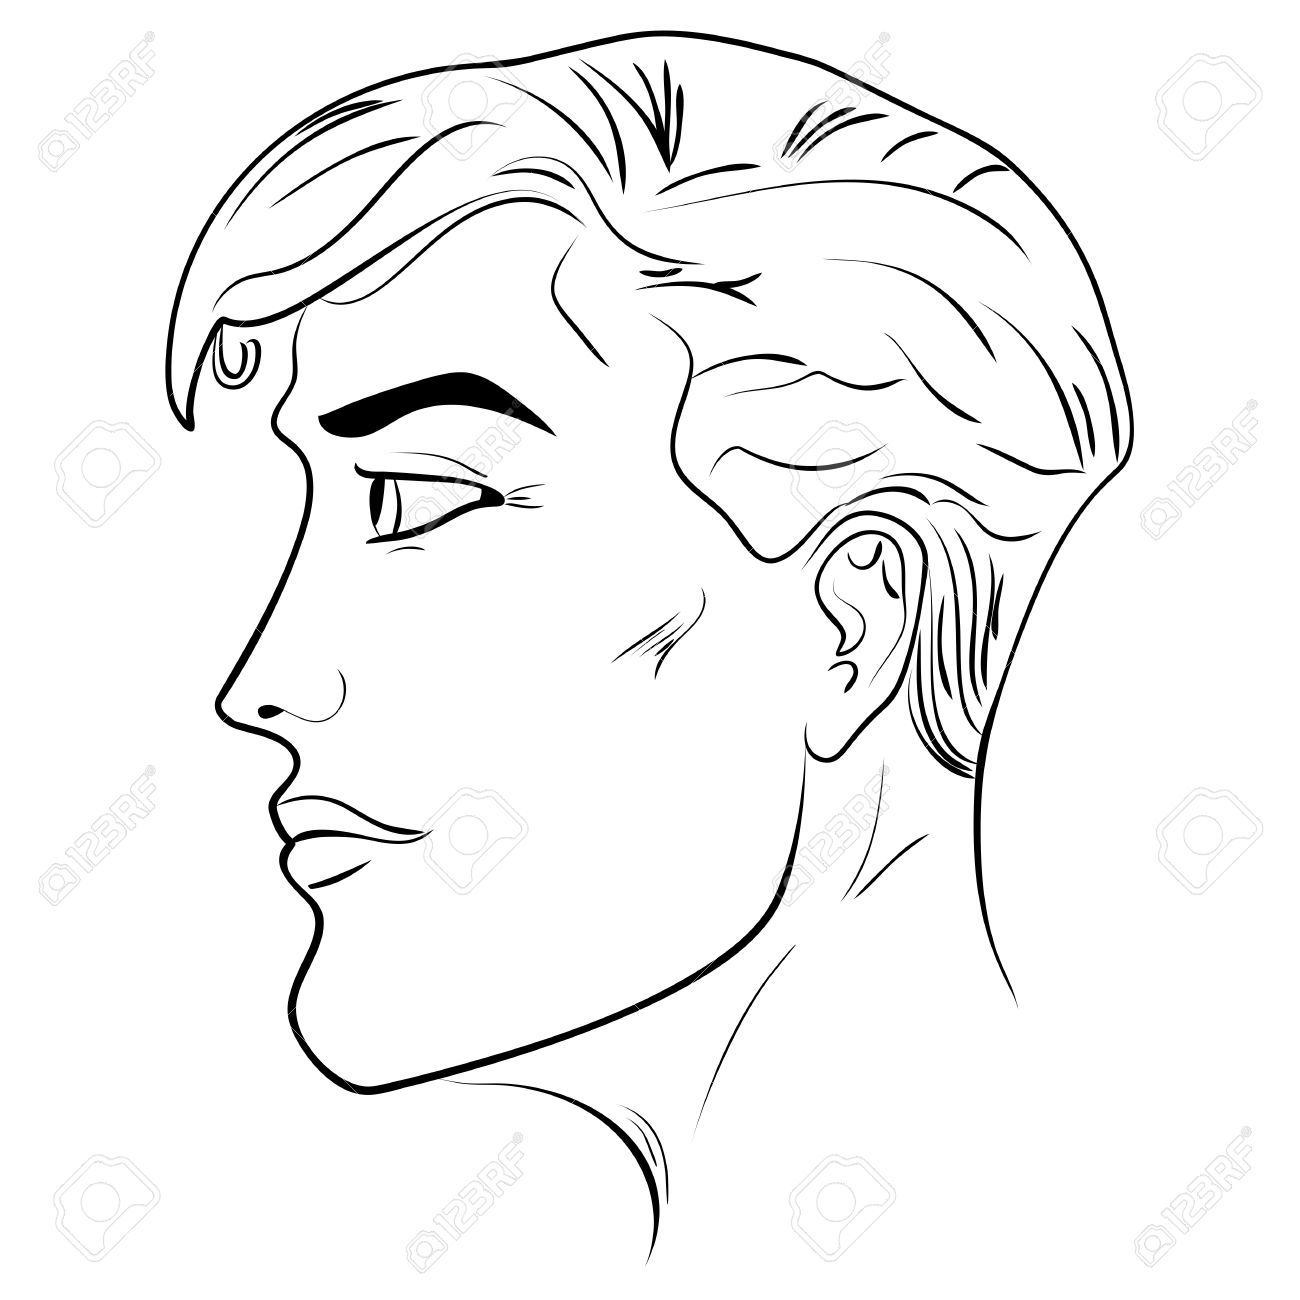 1300x1300 Outline Side Profile Of A Human Male Head Face Close Up, Black